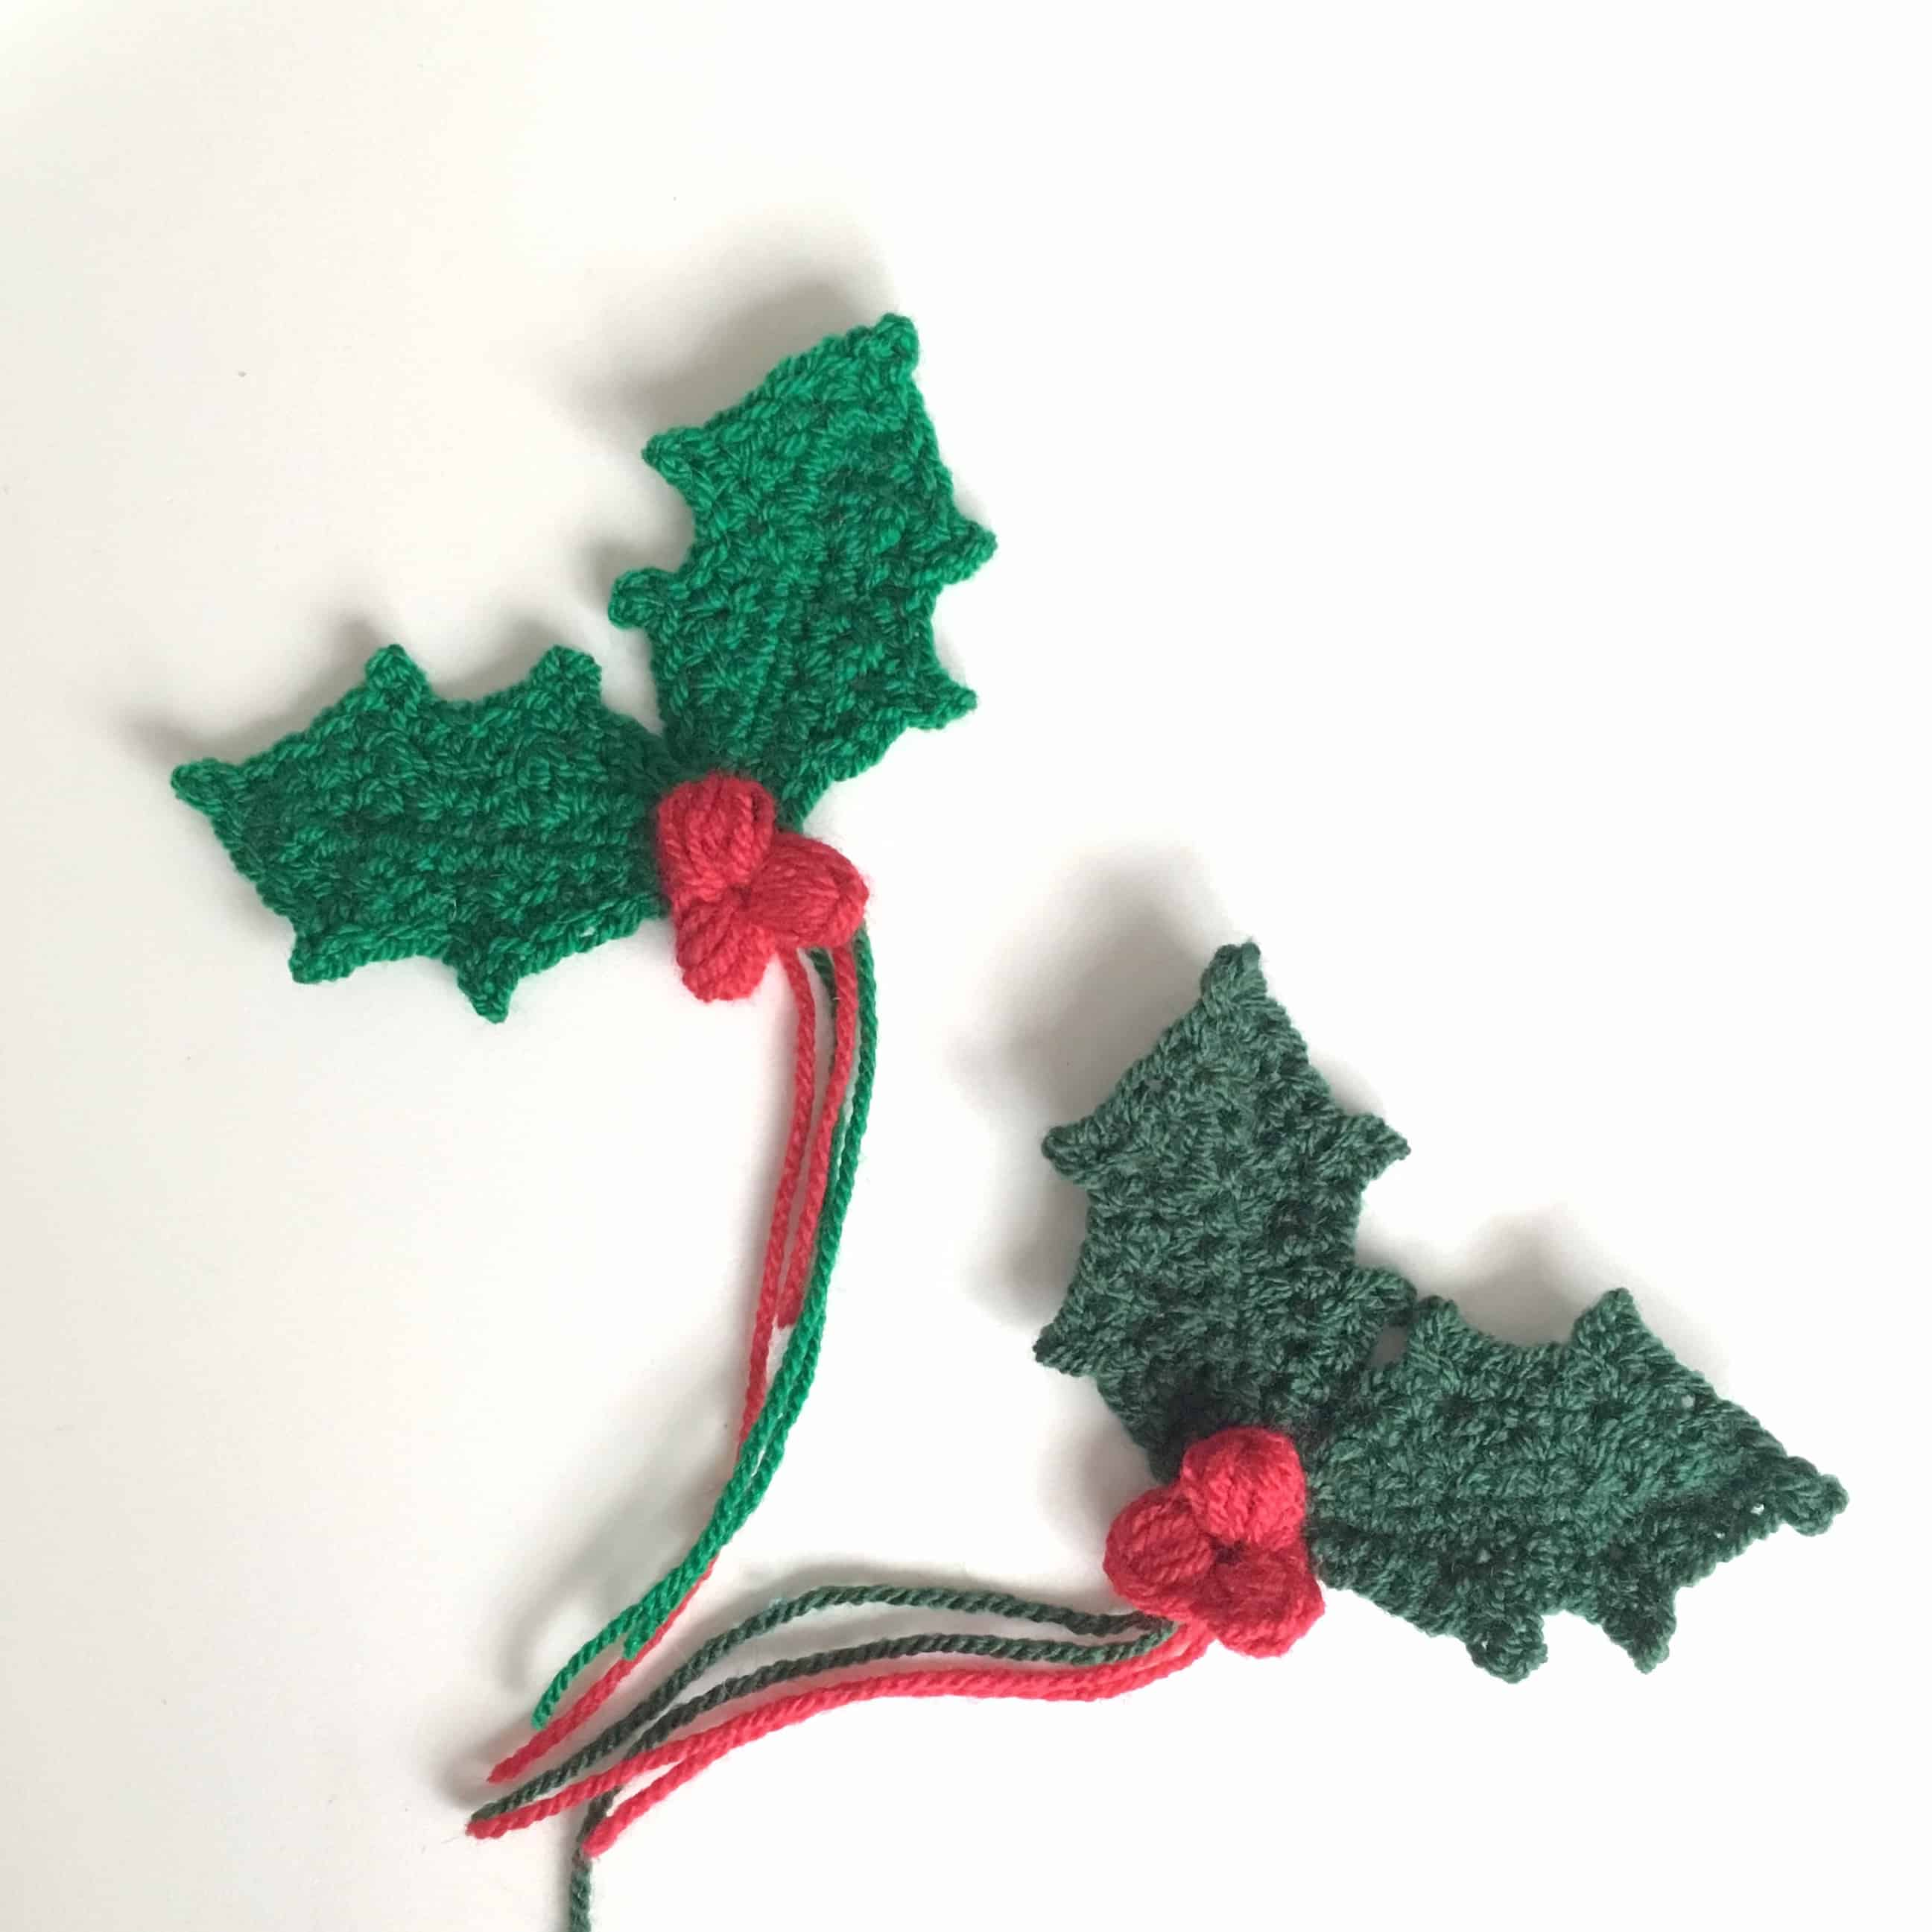 crochet holly sprig with berries by doradoes.co.uk